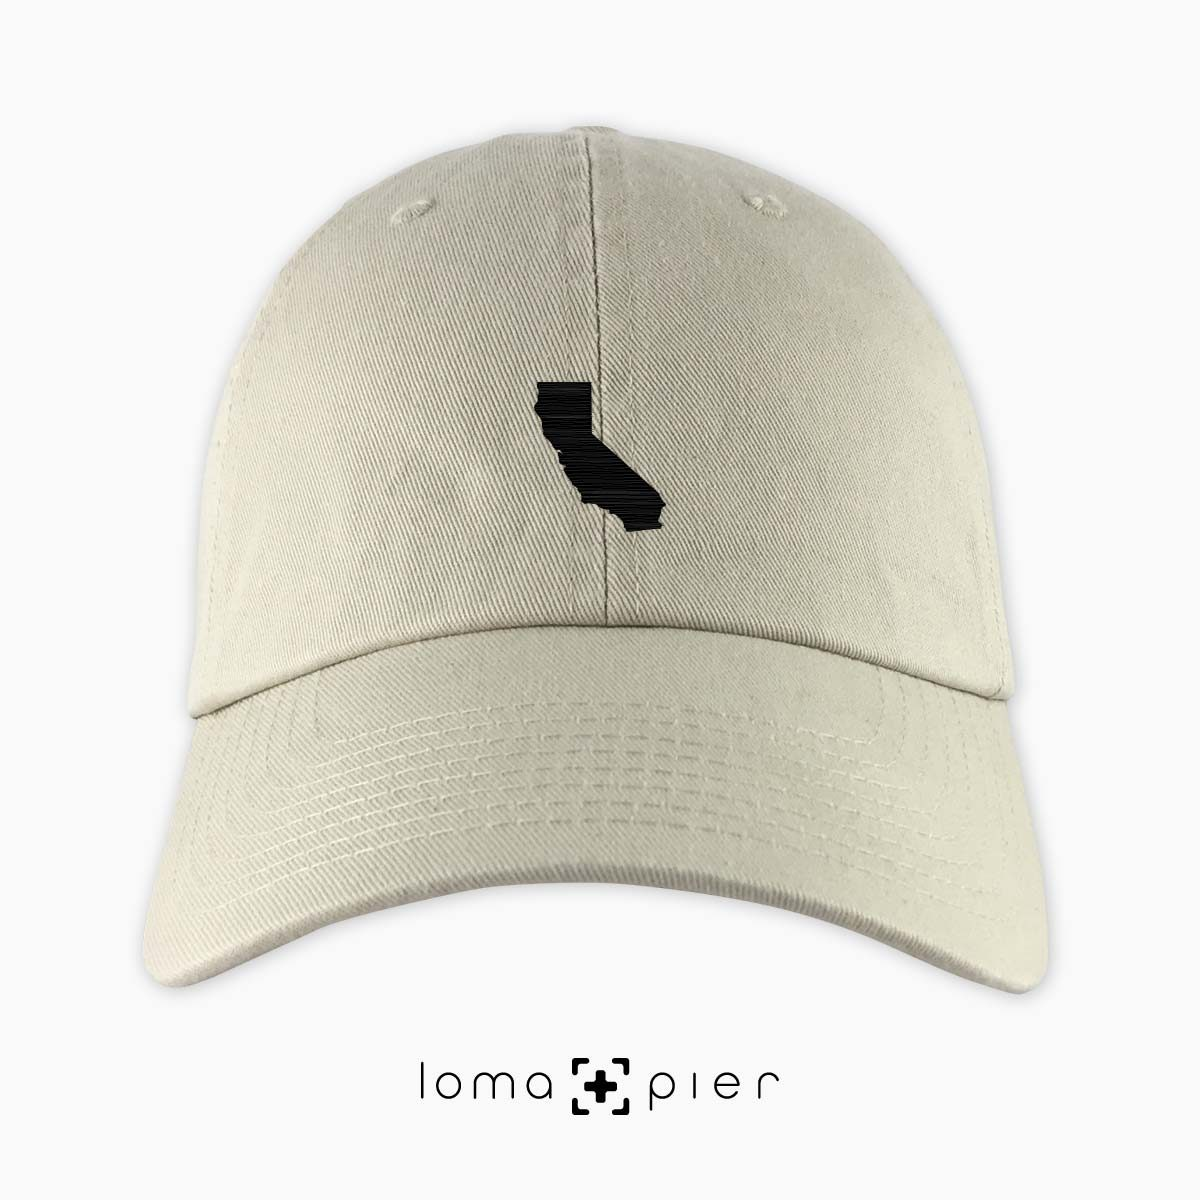 CALIFORNIA silhouette icon embroidered on a khaki unstructured dad hat by loma+pier hat store made in the USA